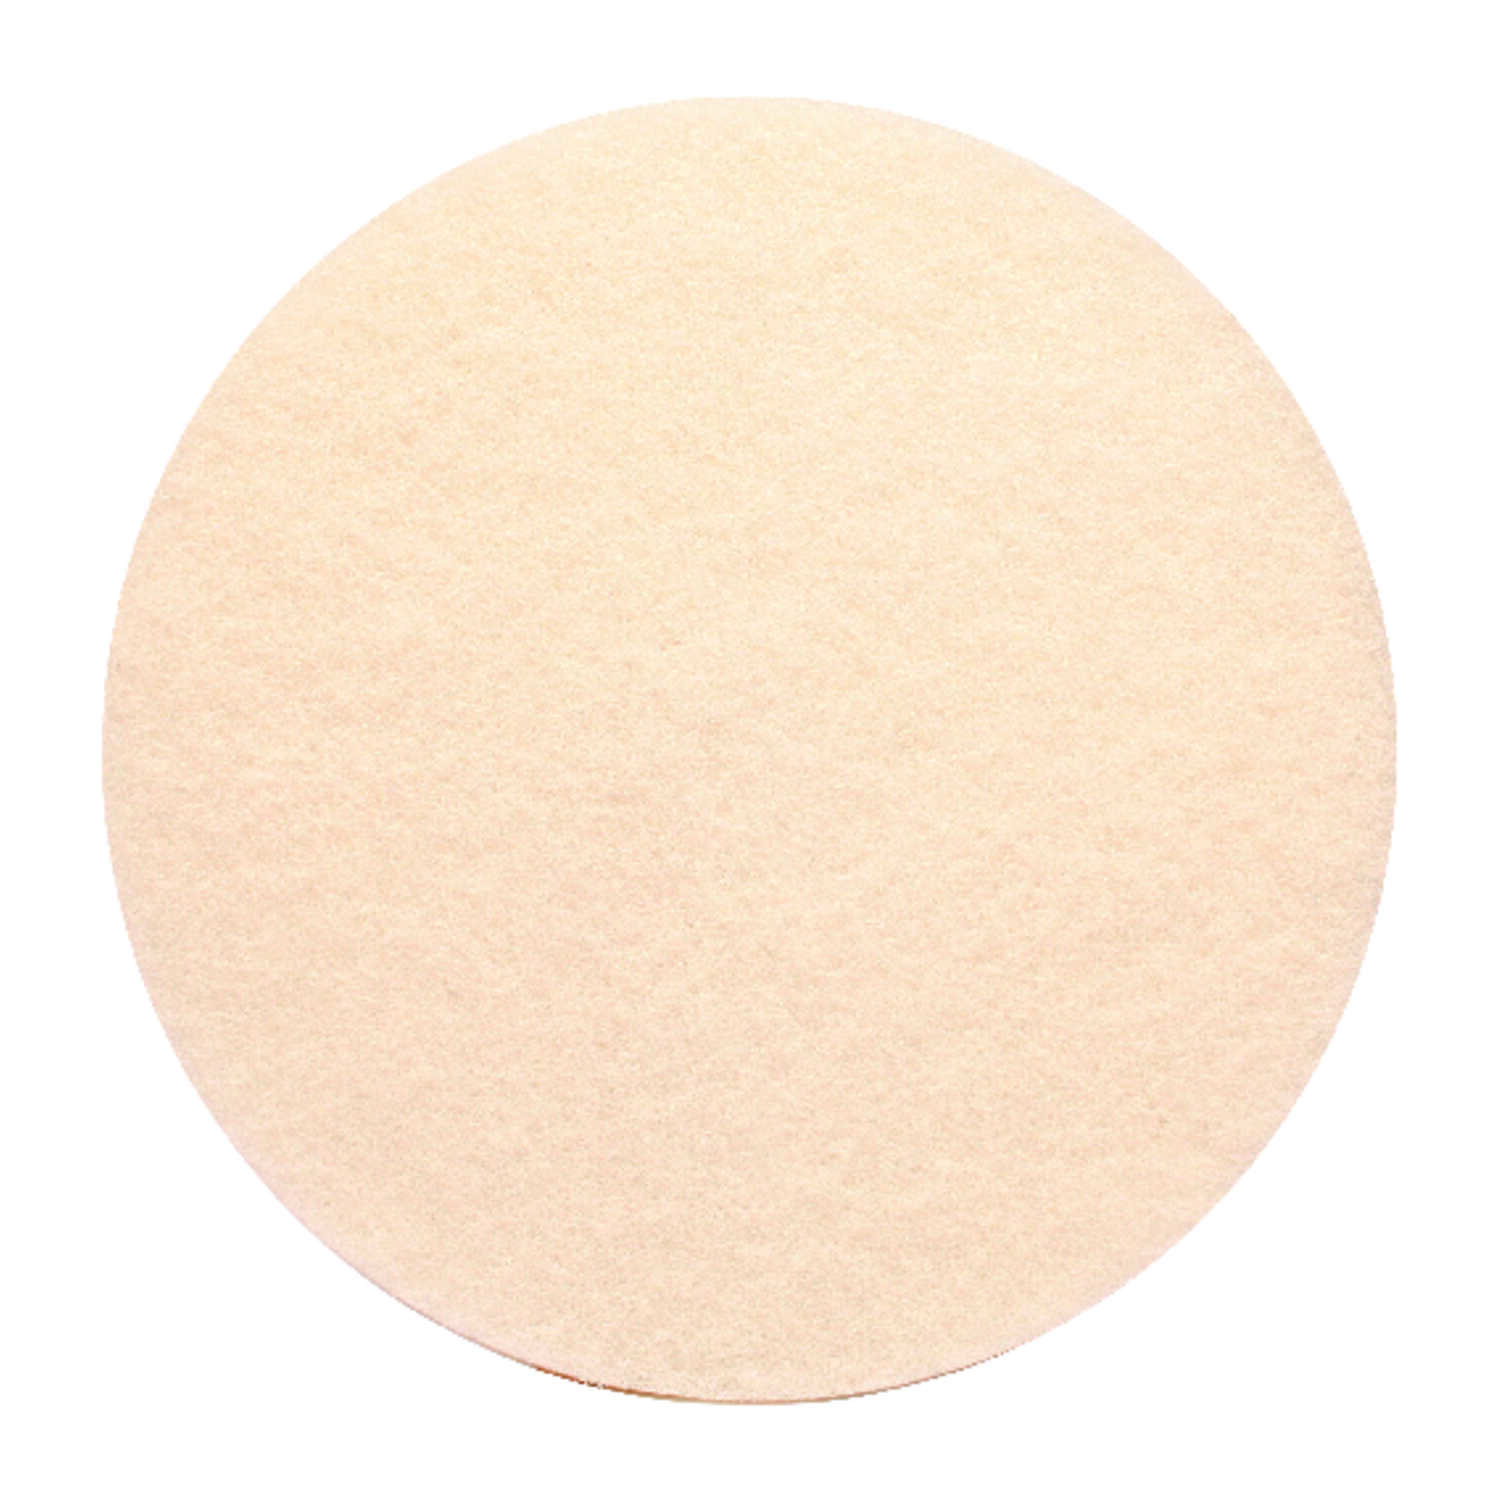 Gator  13 in. Dia. Floor Pad Disc White  White  Non-Woven Natural/Polyester Fiber